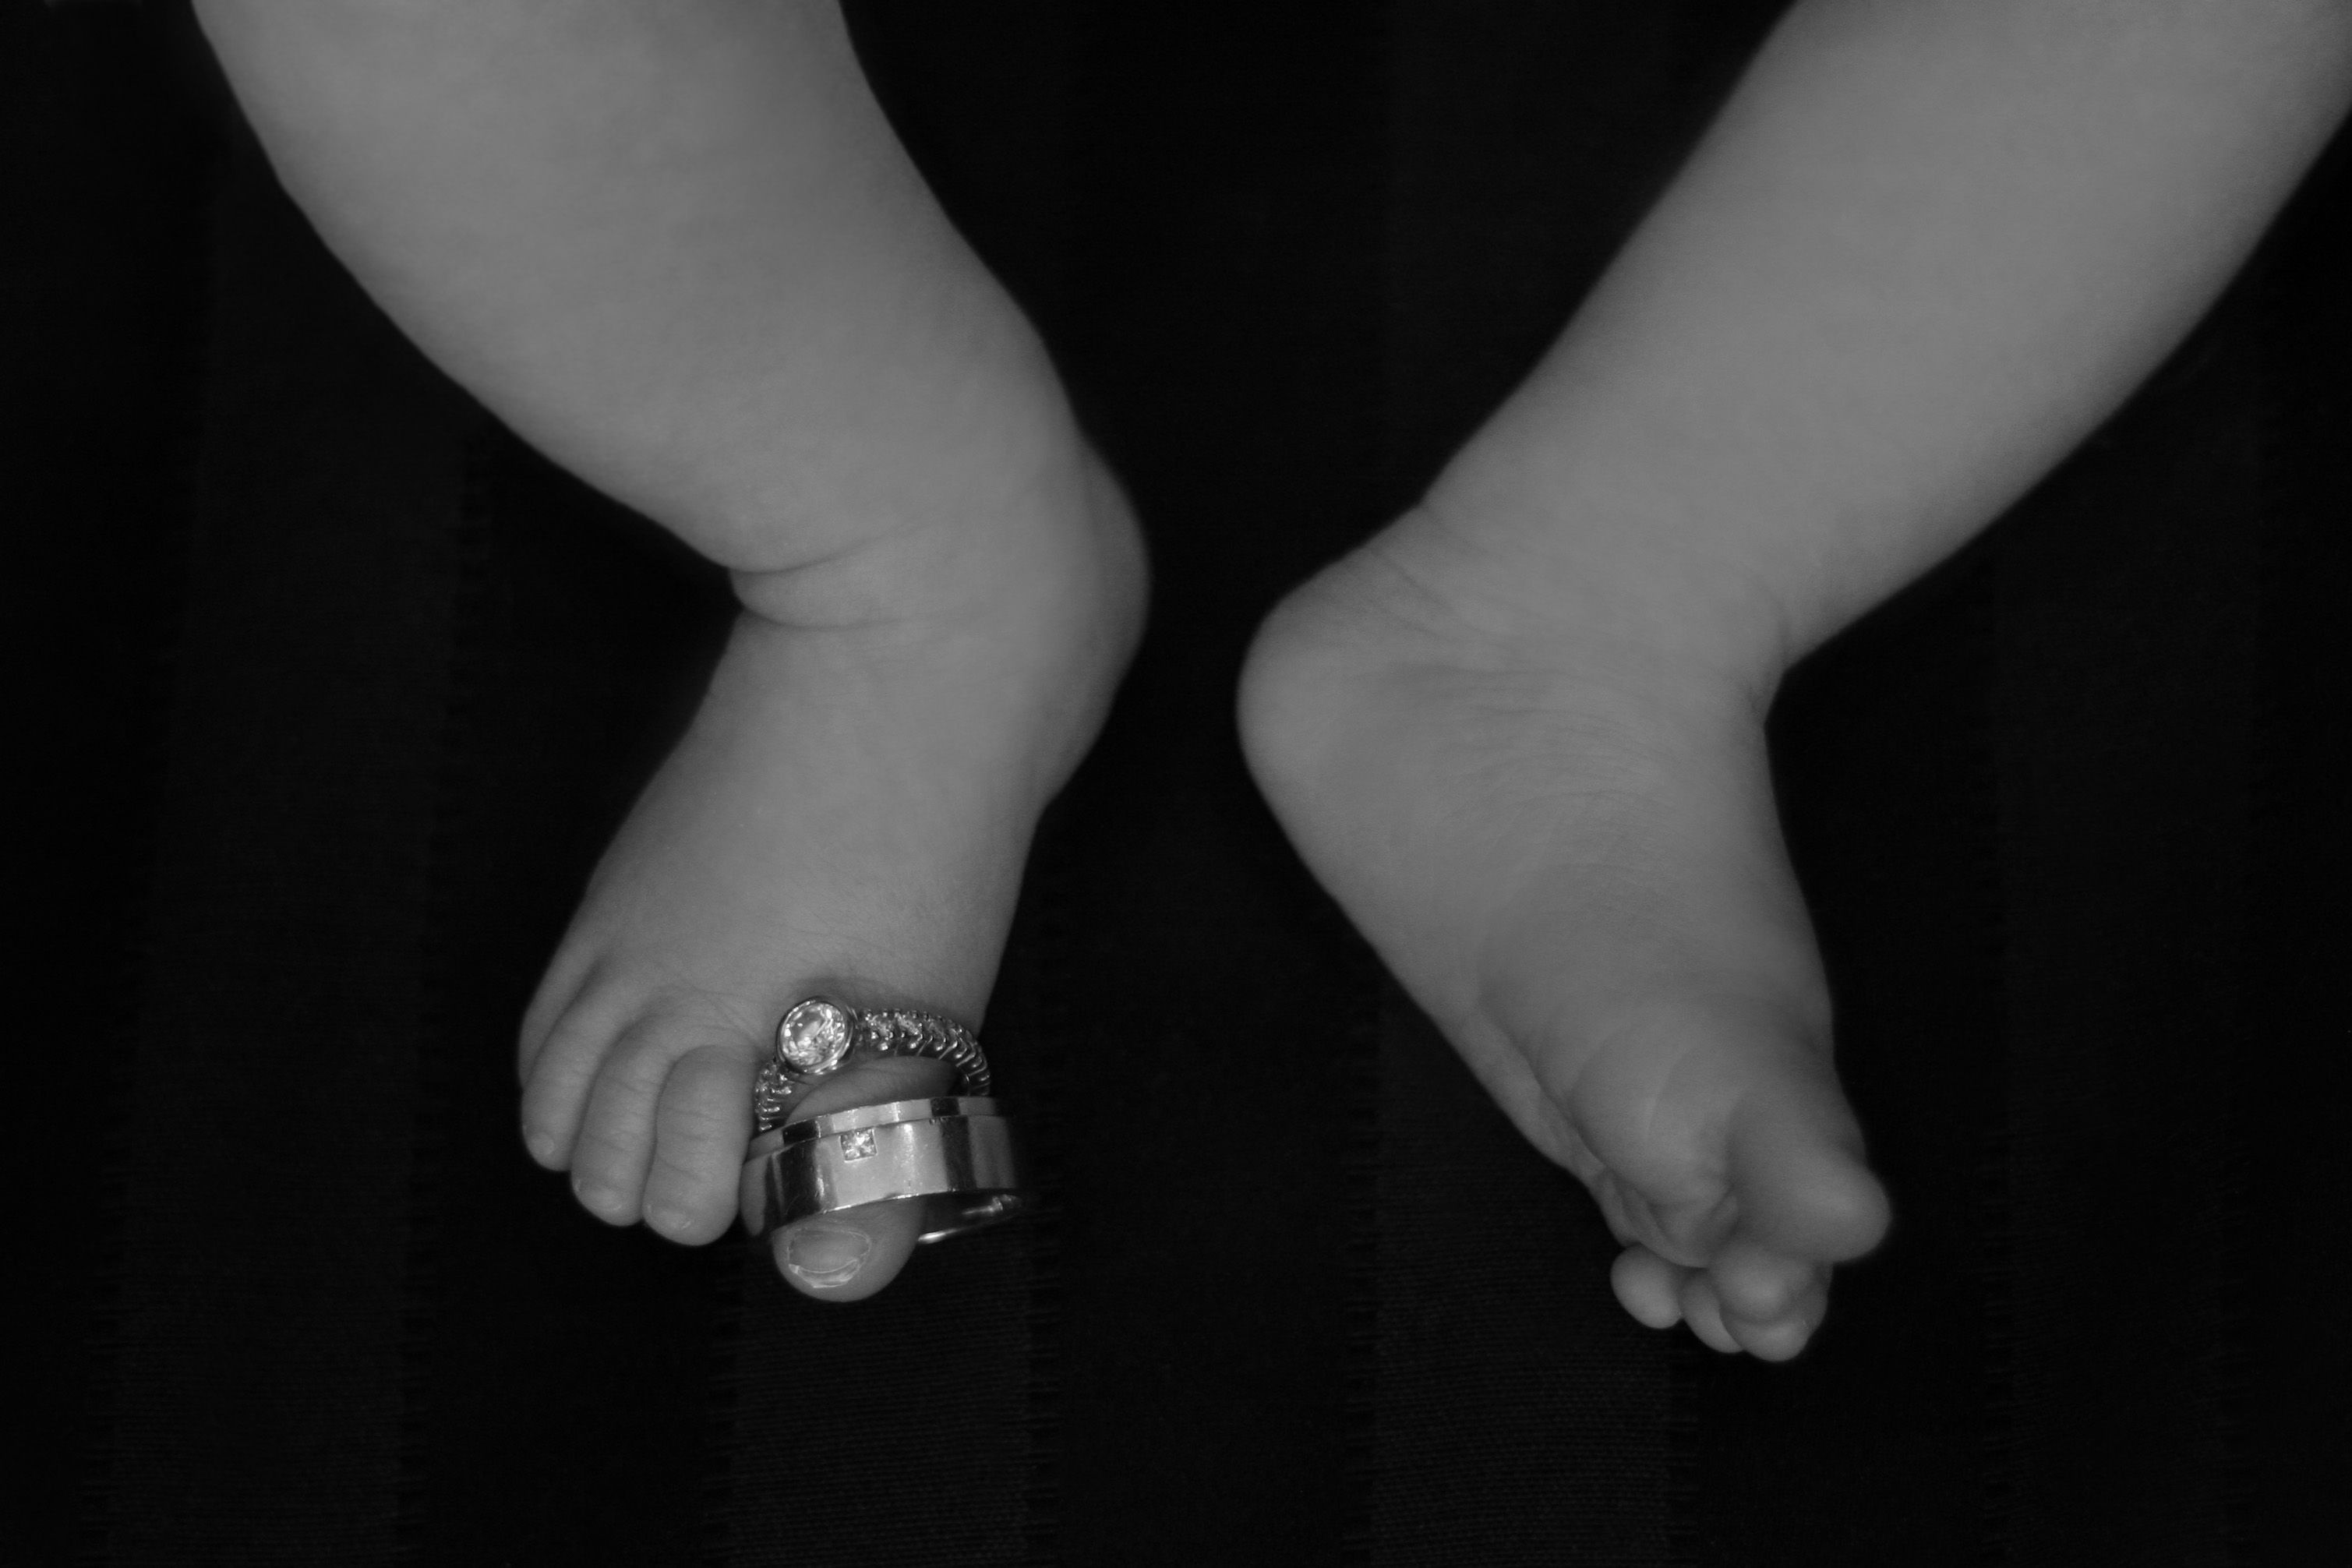 My son's feet with our wedding rings.